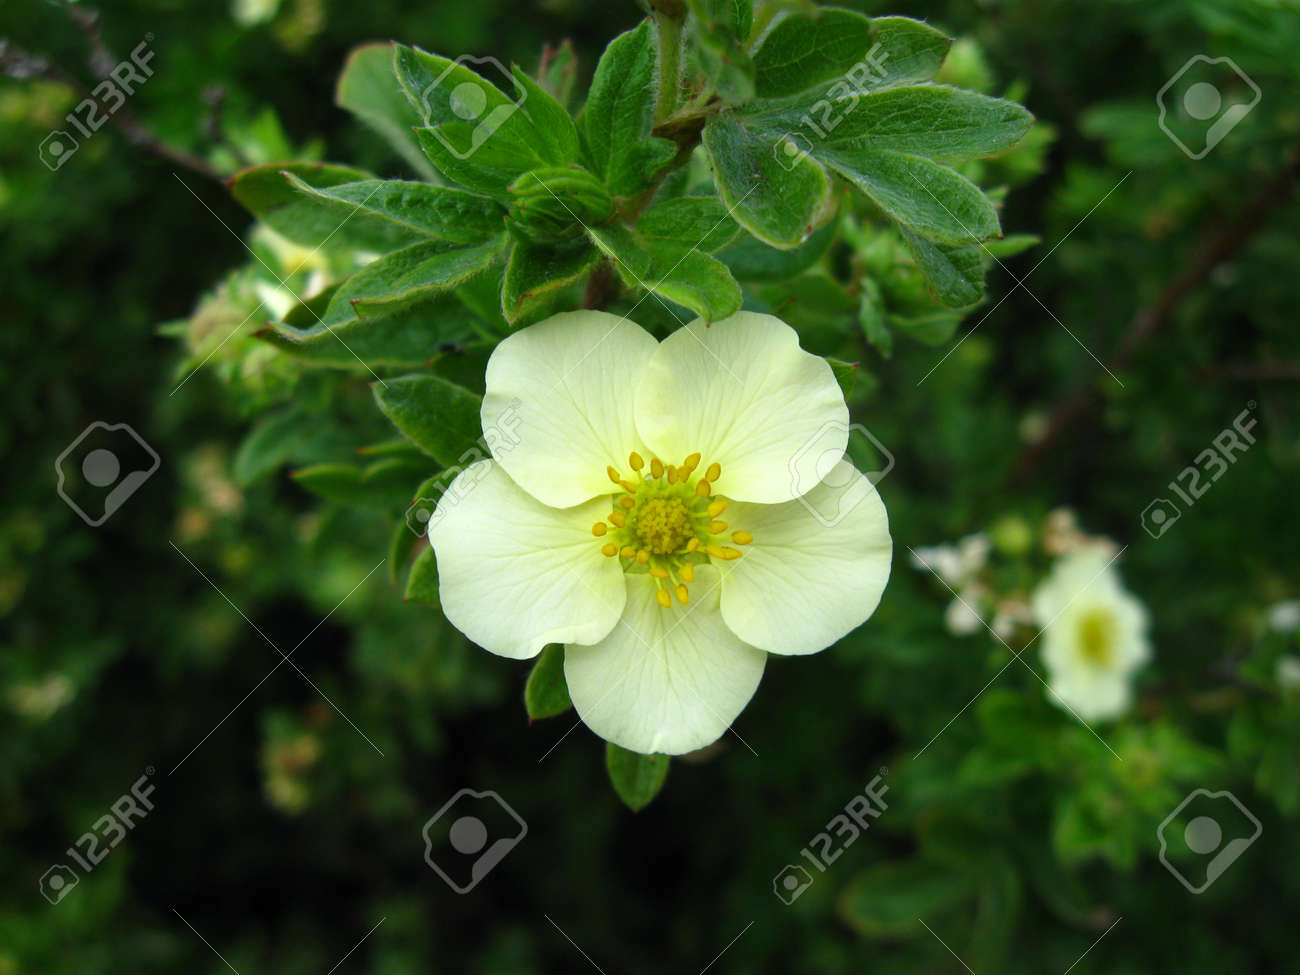 White Flower On A Tree With Five Petalscro Stock Photo Picture